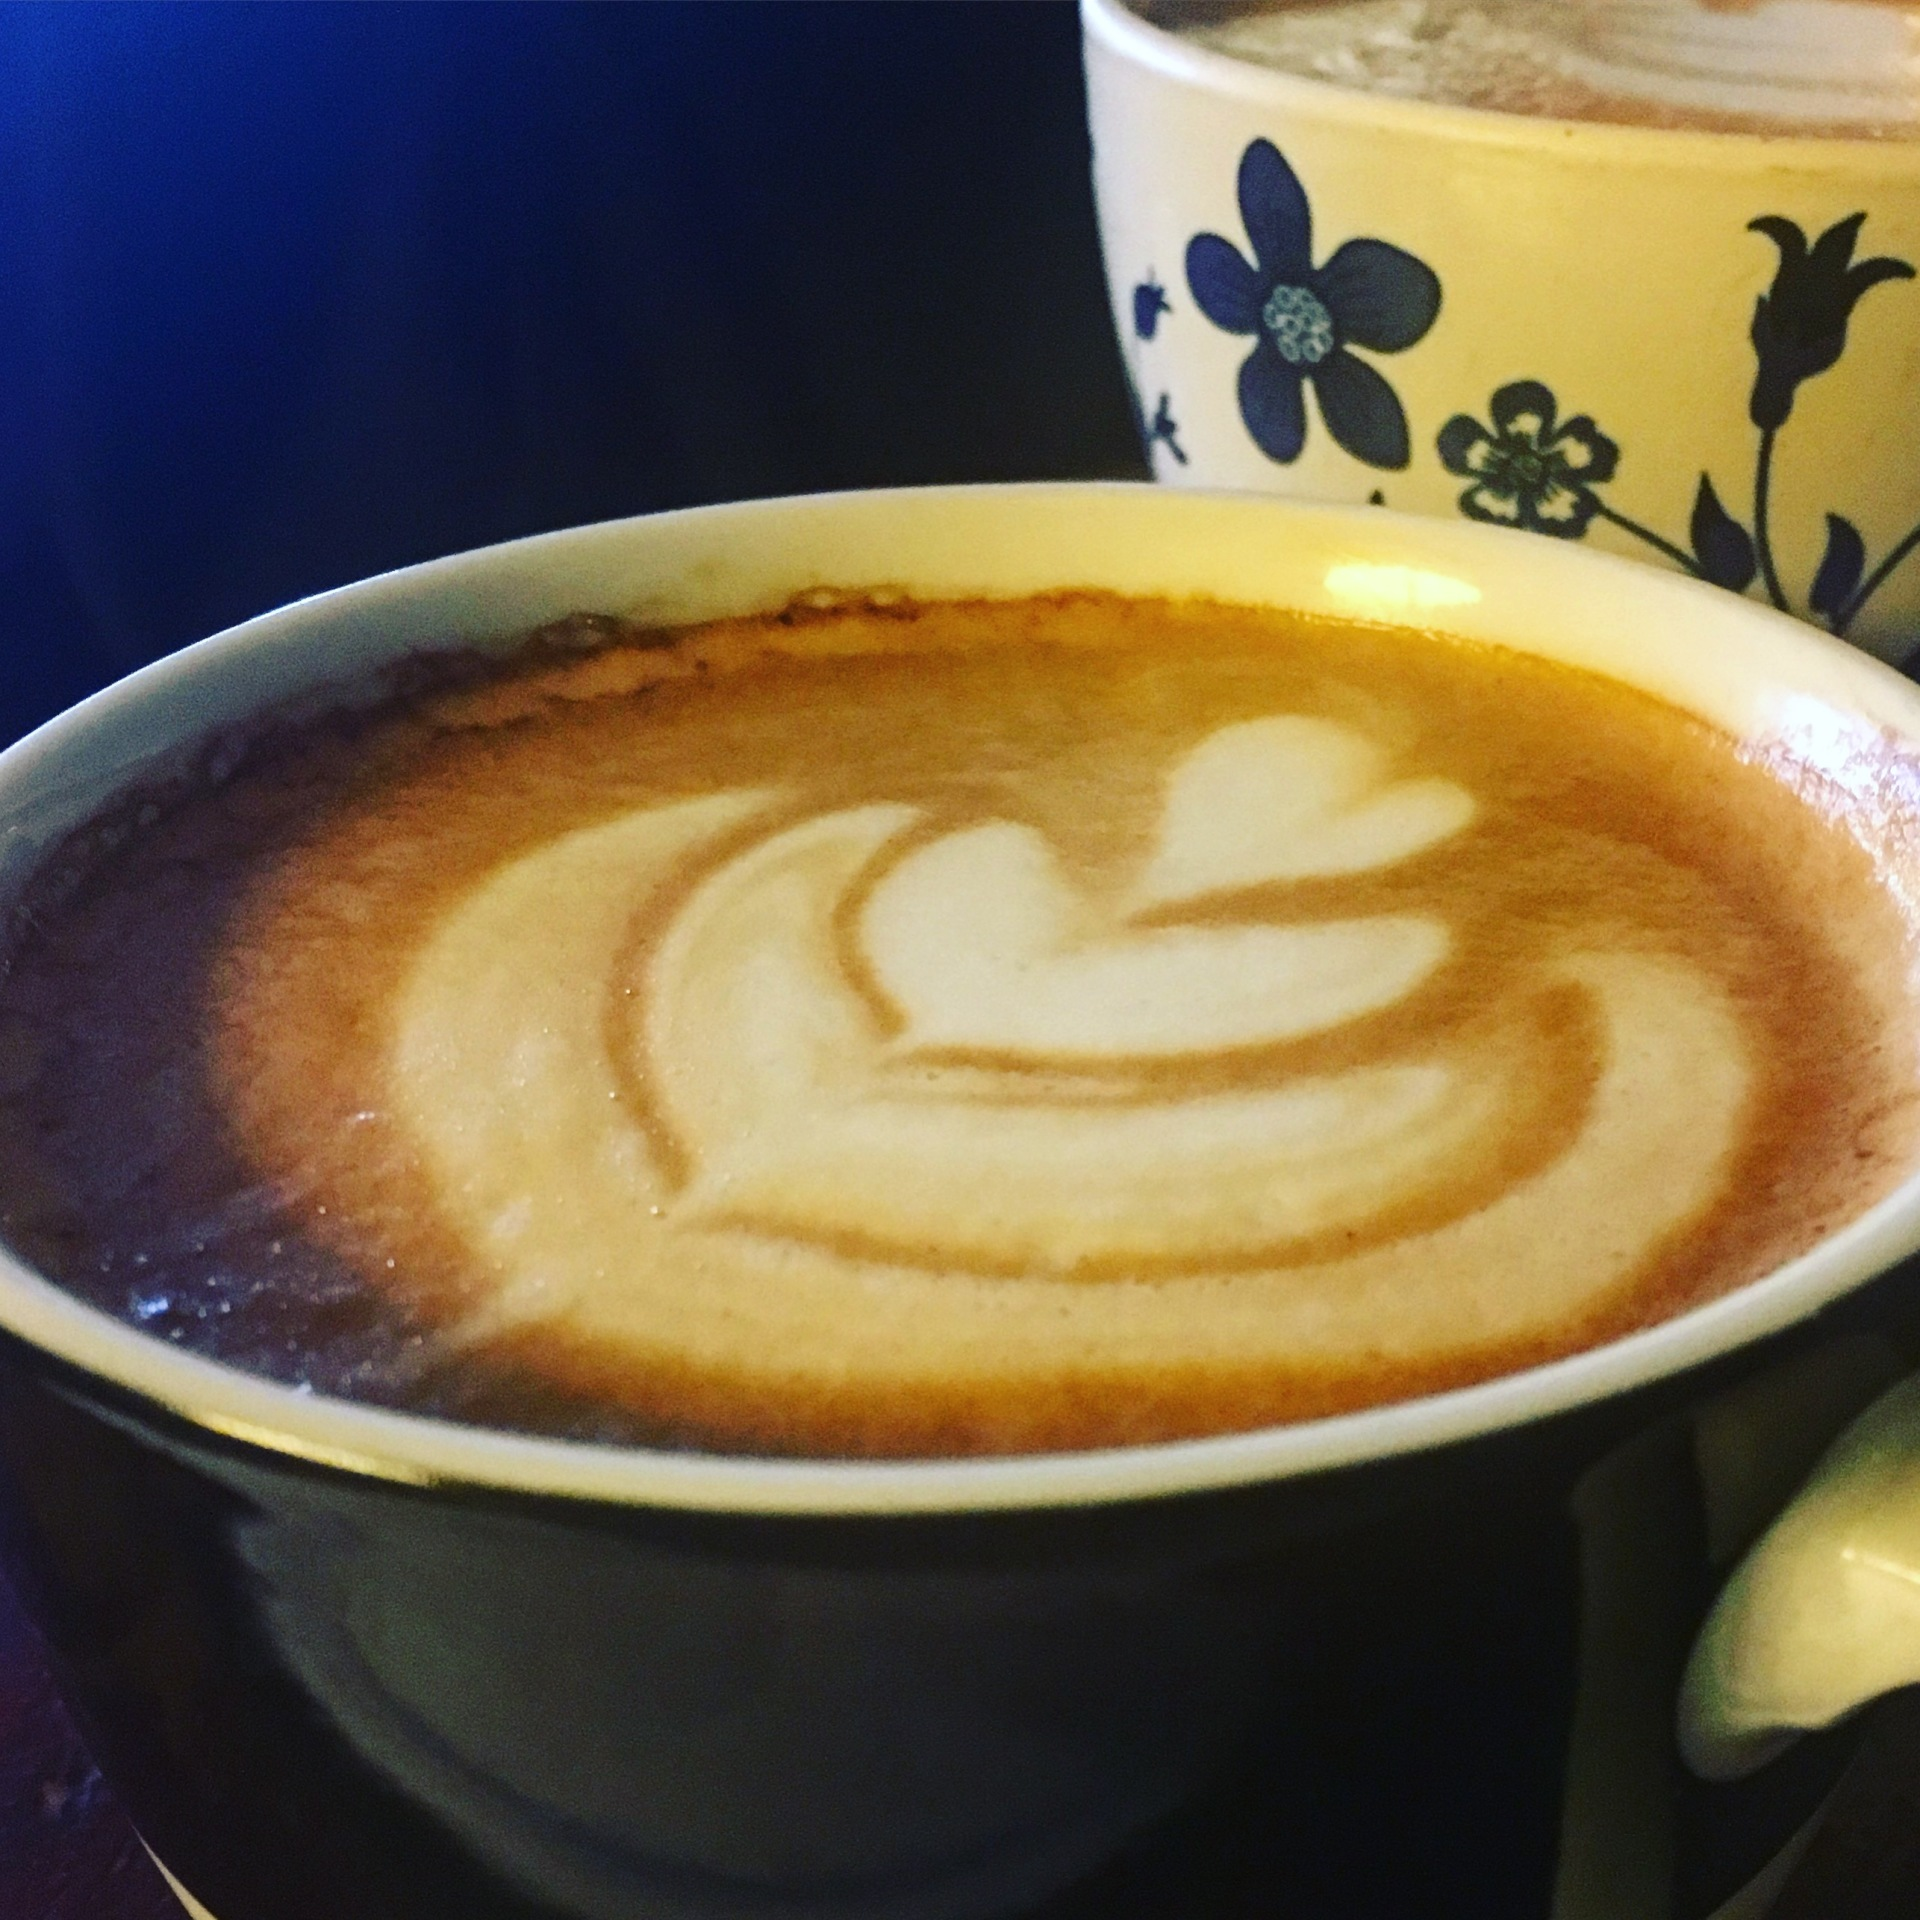 some fancy latte art!